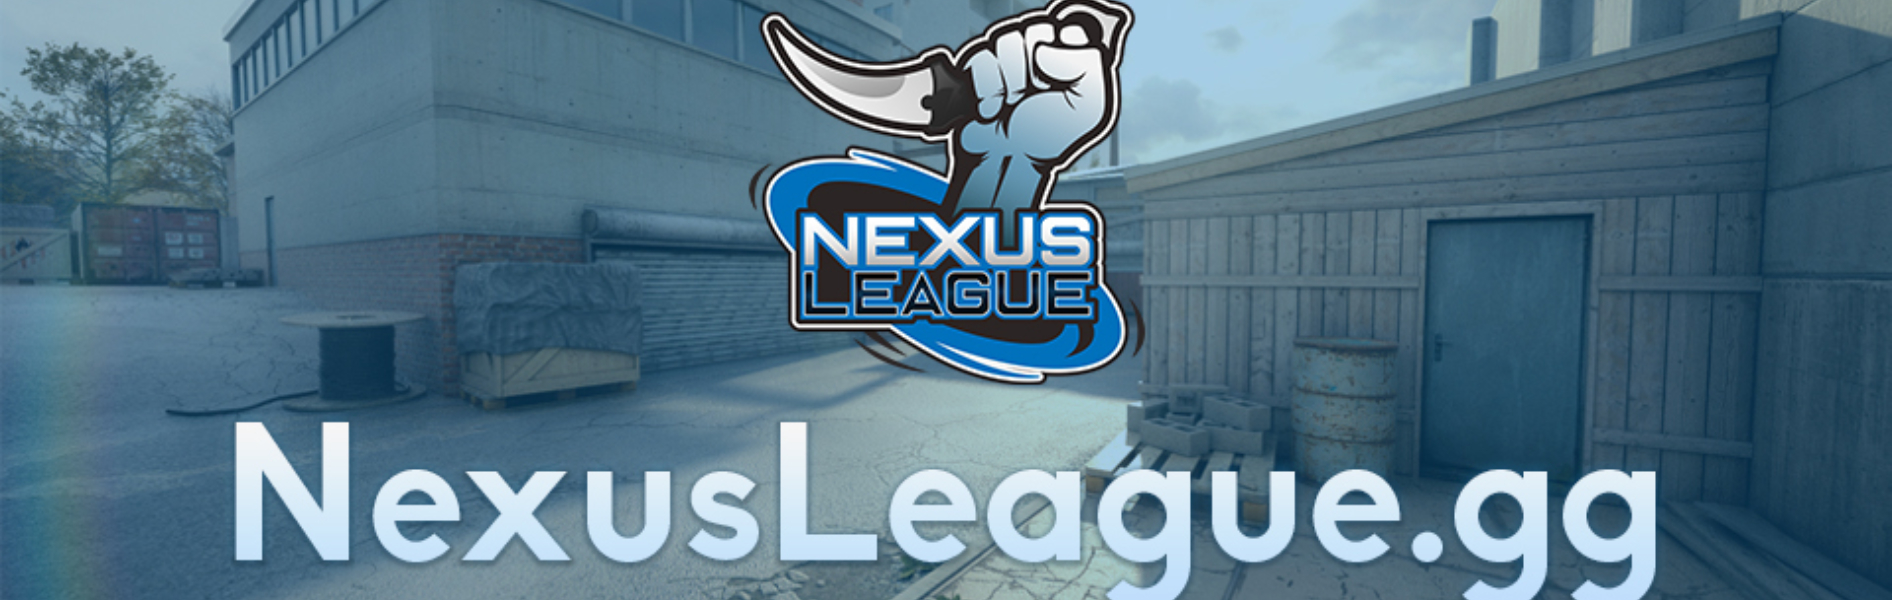 Nexus League Banner